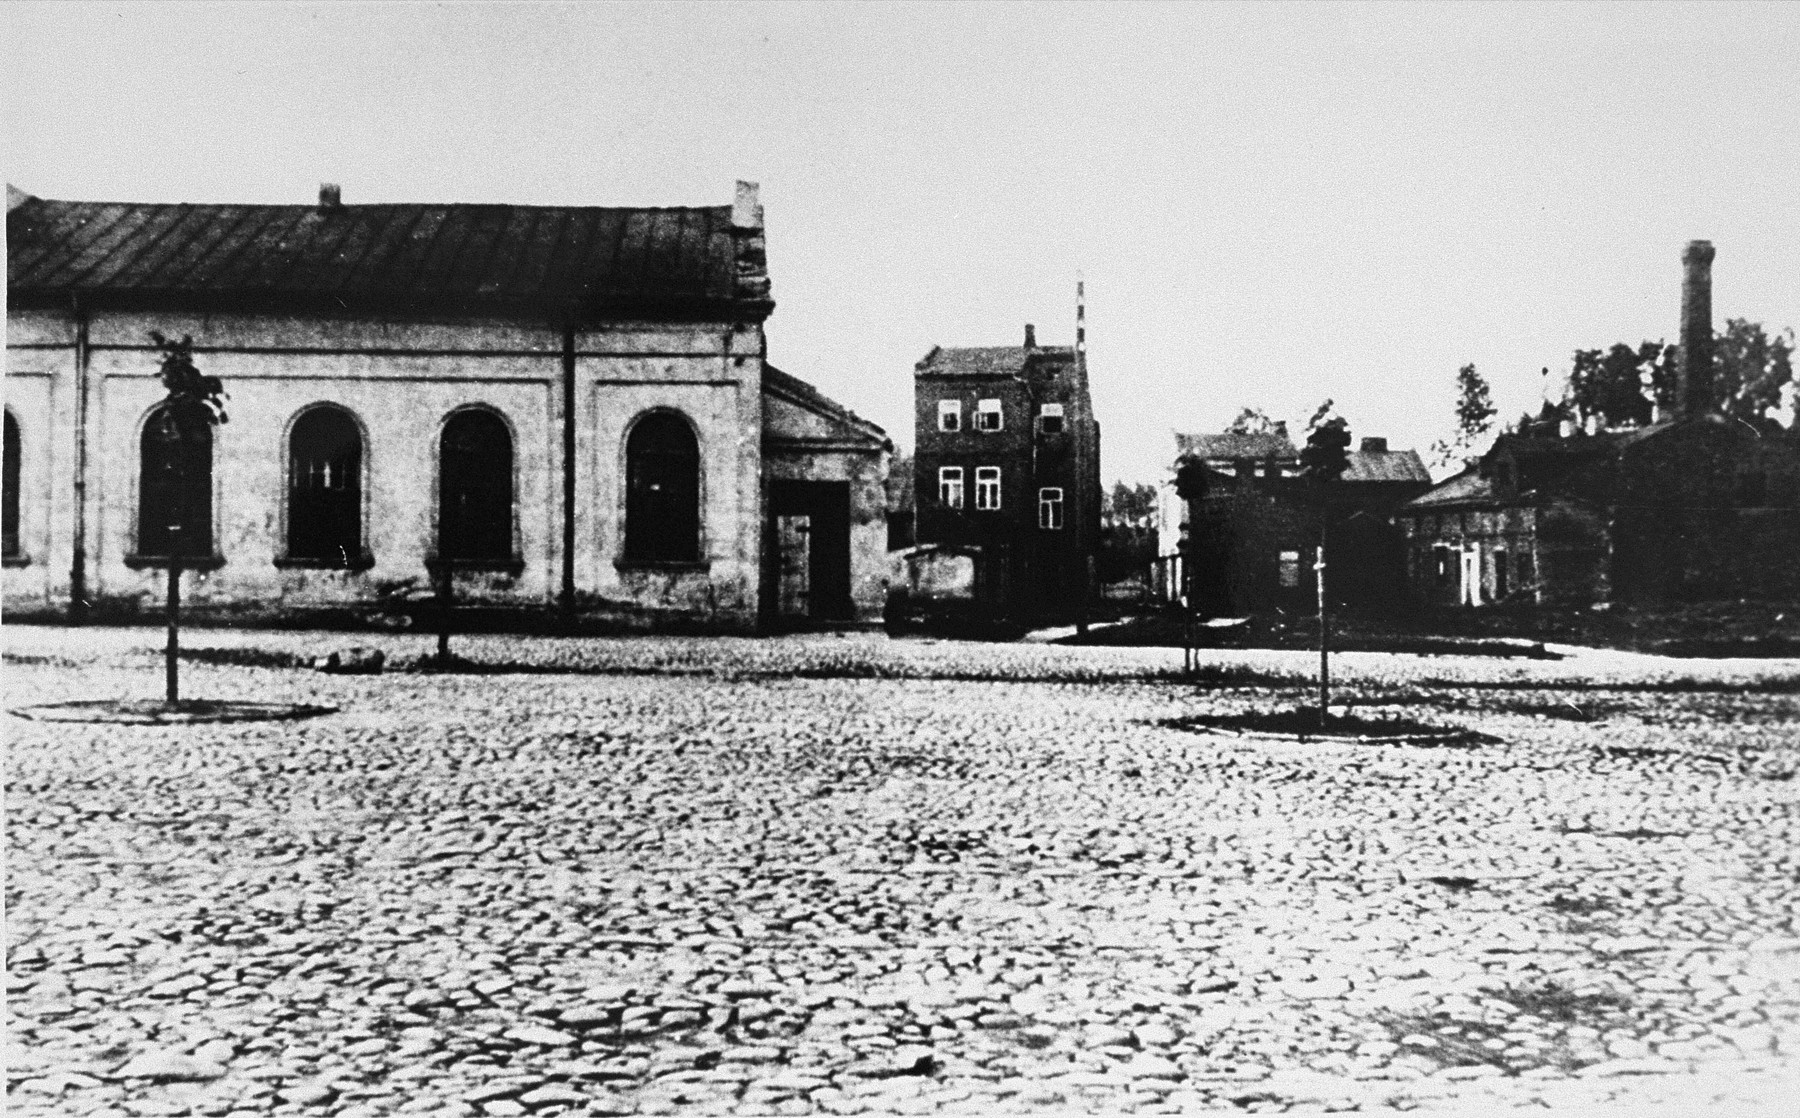 A synagogue in Kolo, a town near Chelmno, where Jews were kept until they could be loaded into gas vans, executed, and cremated at Chelmno.